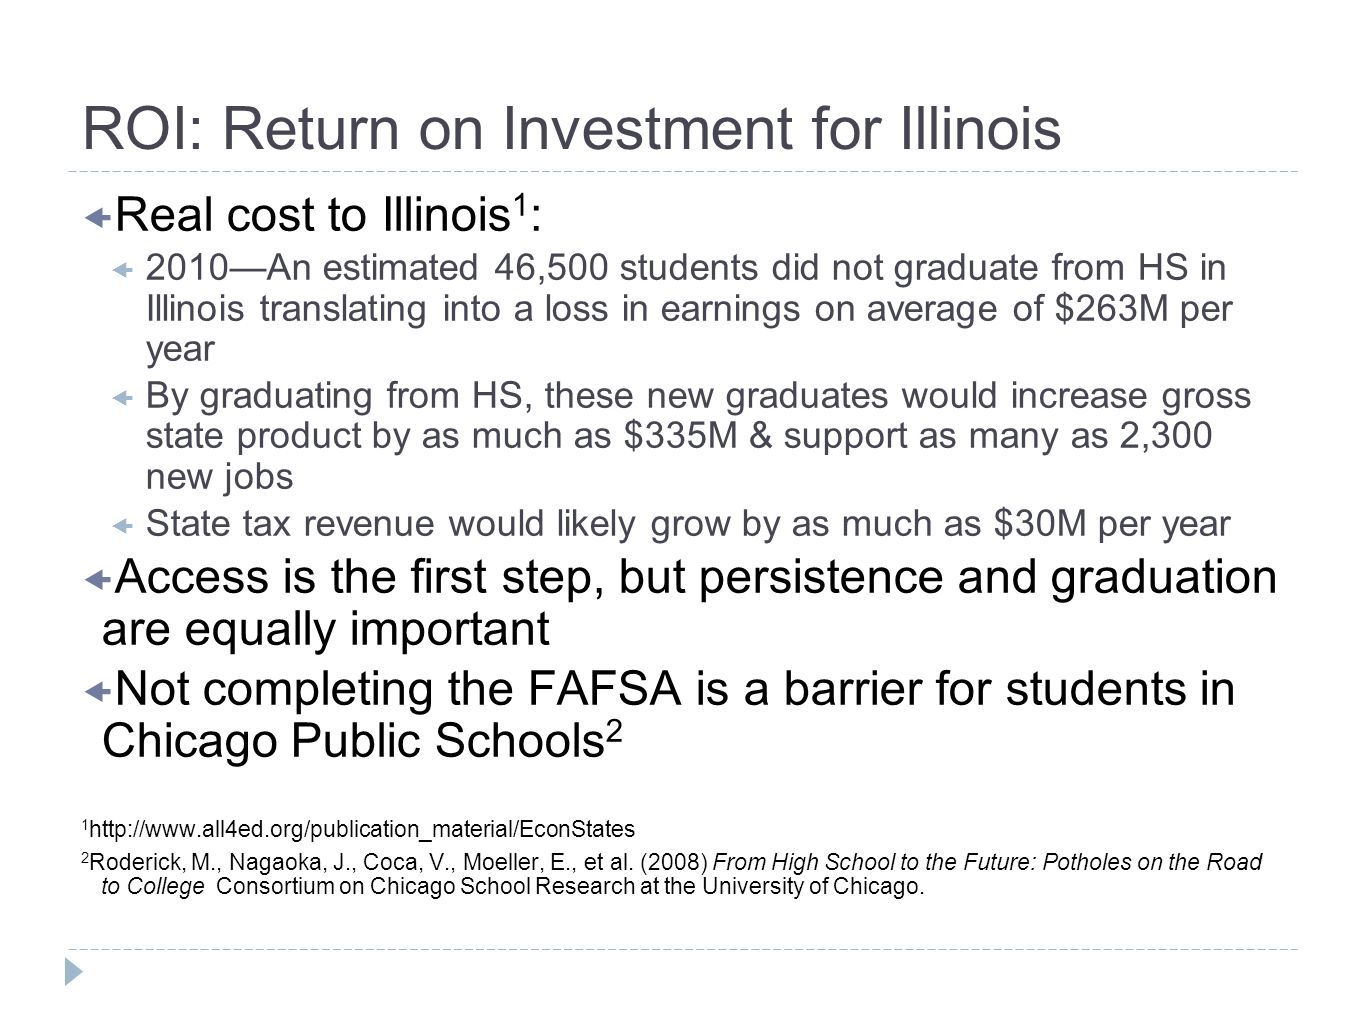 ROI: Return on Investment for Illinois Real cost to Illinois 1 : 2010An estimated 46,500 students did not graduate from HS in Illinois translating into a loss in earnings on average of $263M per year By graduating from HS, these new graduates would increase gross state product by as much as $335M & support as many as 2,300 new jobs State tax revenue would likely grow by as much as $30M per year Access is the first step, but persistence and graduation are equally important Not completing the FAFSA is a barrier for students in Chicago Public Schools Roderick, M., Nagaoka, J., Coca, V., Moeller, E., et al.